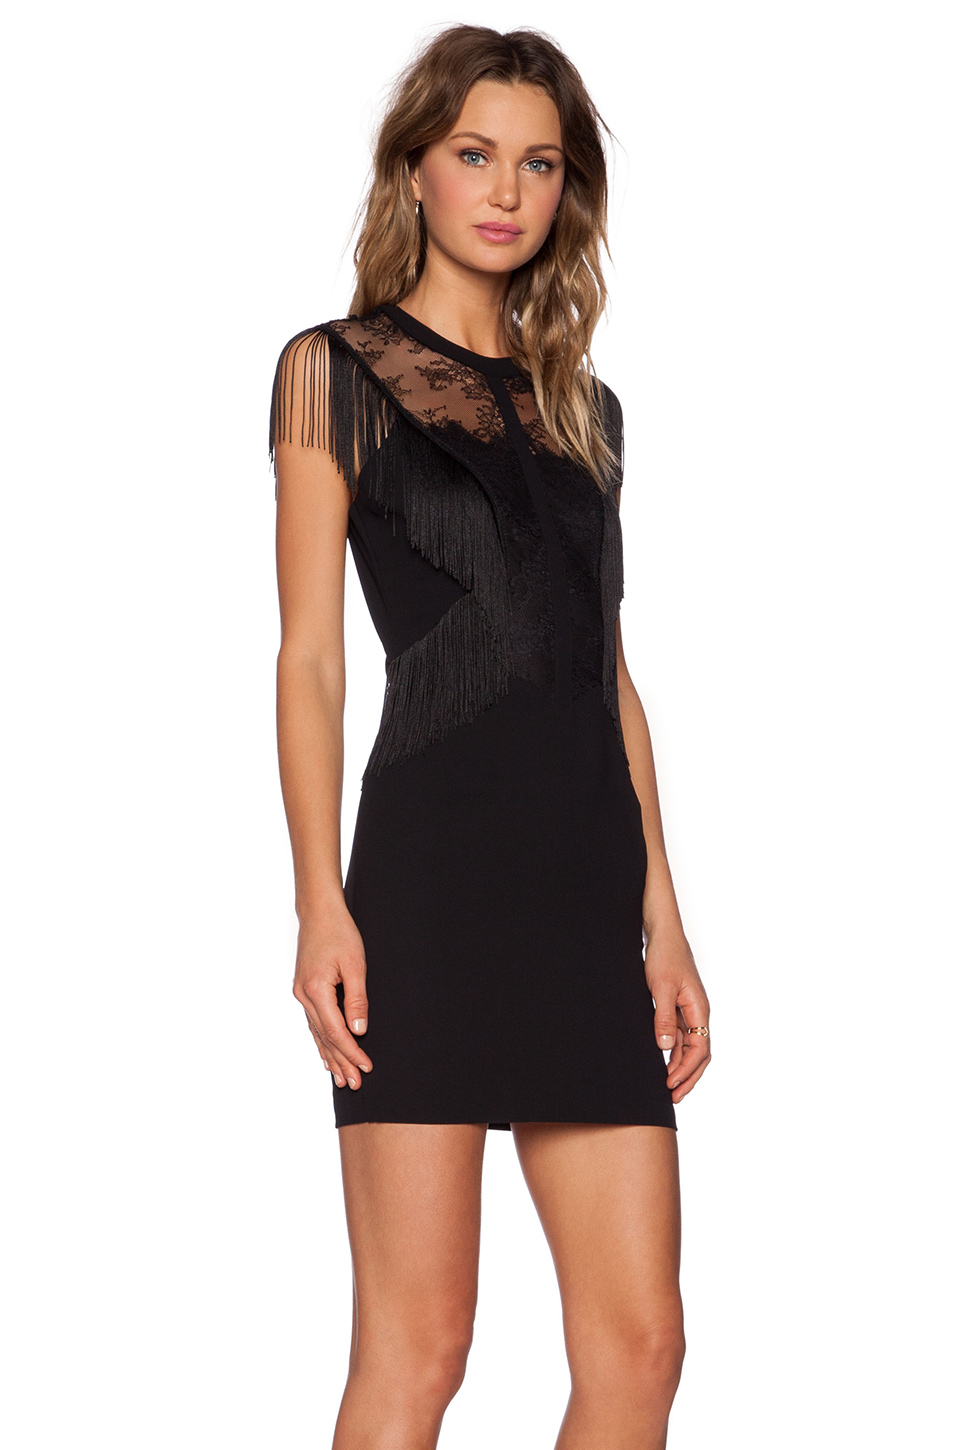 6a9d24c623a The Kooples Fringed Lace Dress in Black - Lyst